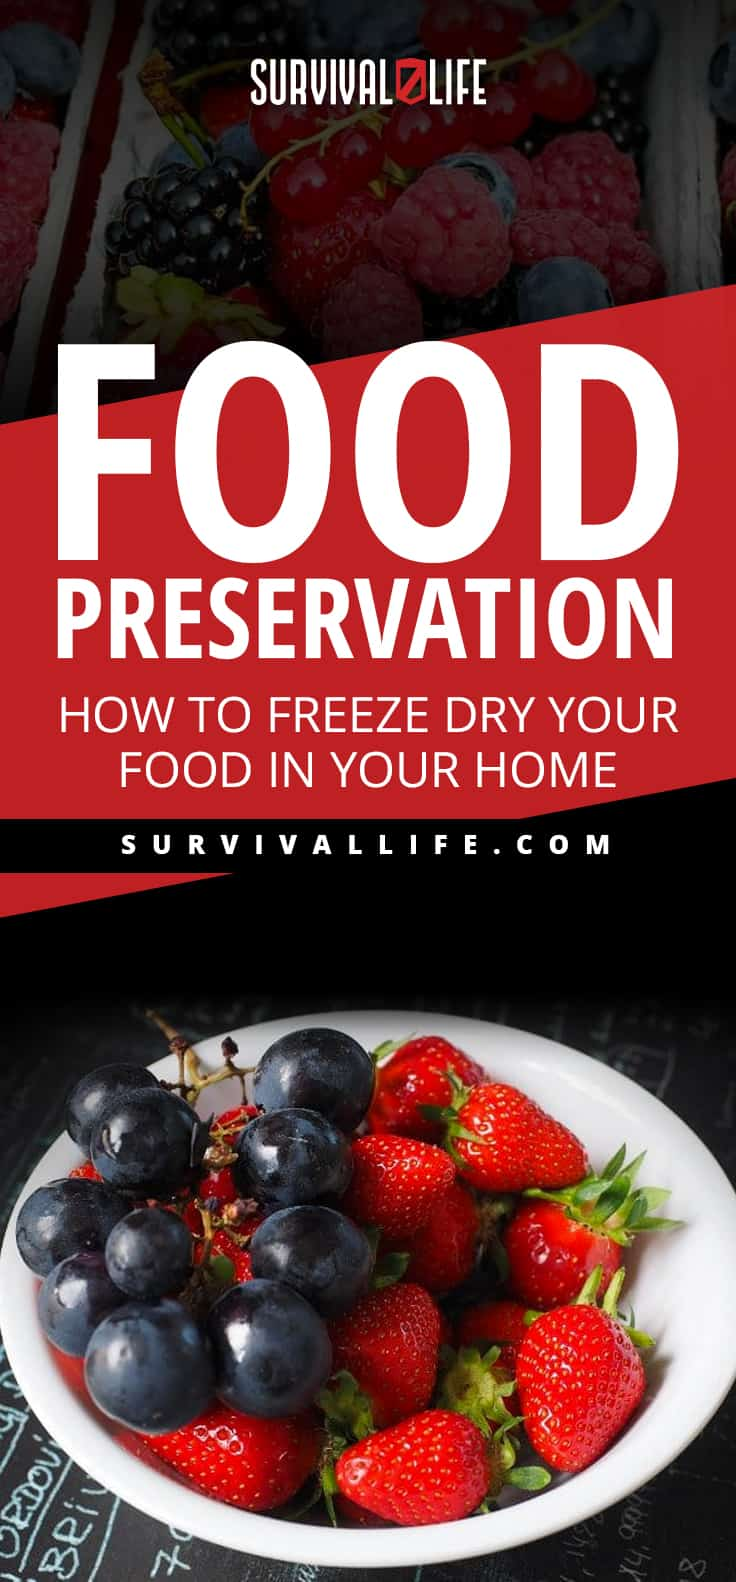 Food Preservation | How To Freeze Dry Your Food In Your Home